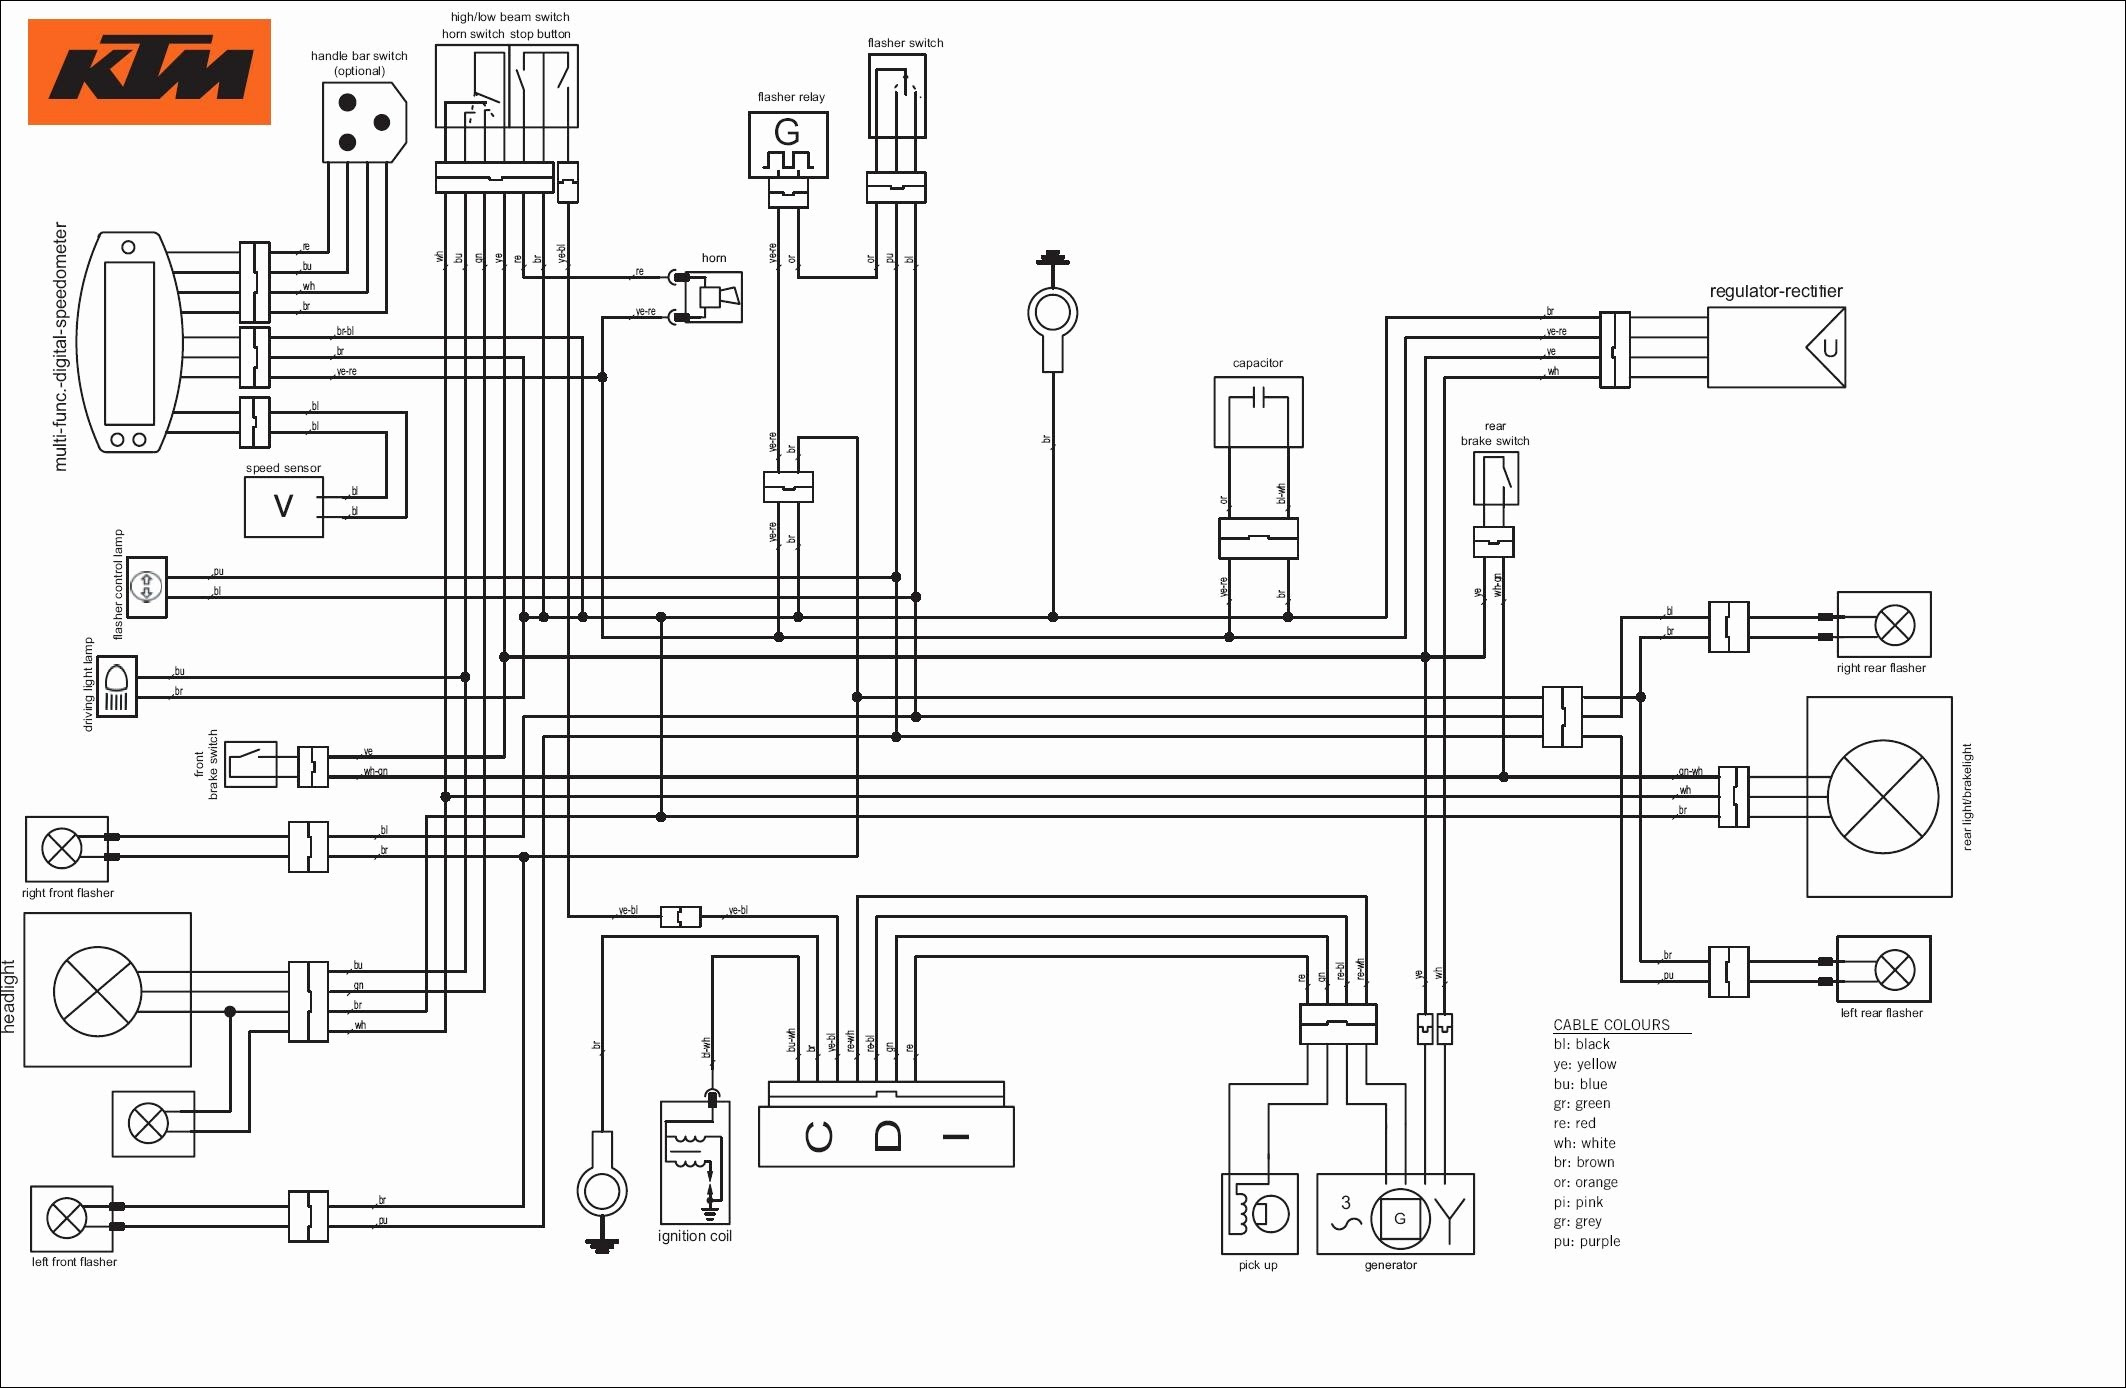 John Deere B Wiring Diagram from lh5.googleusercontent.com